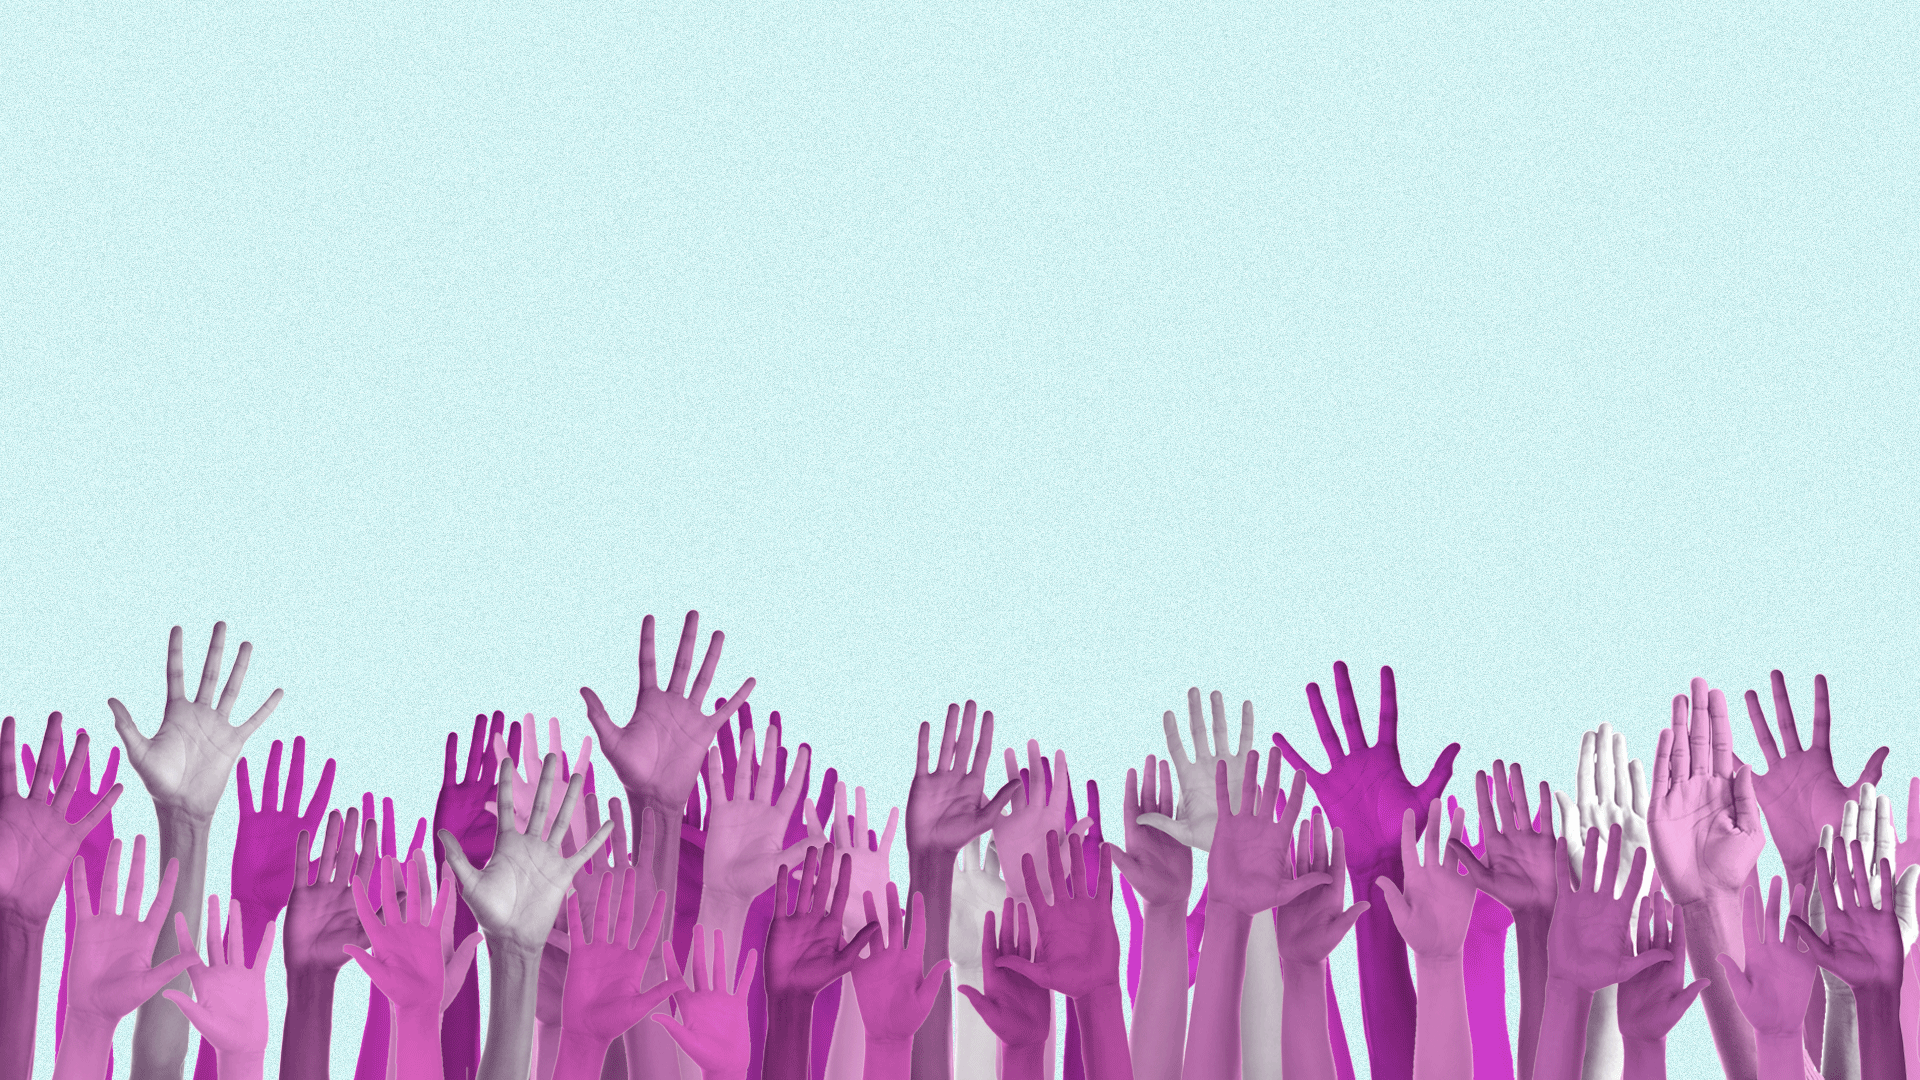 Illustration of a line of hands raised up in the air.